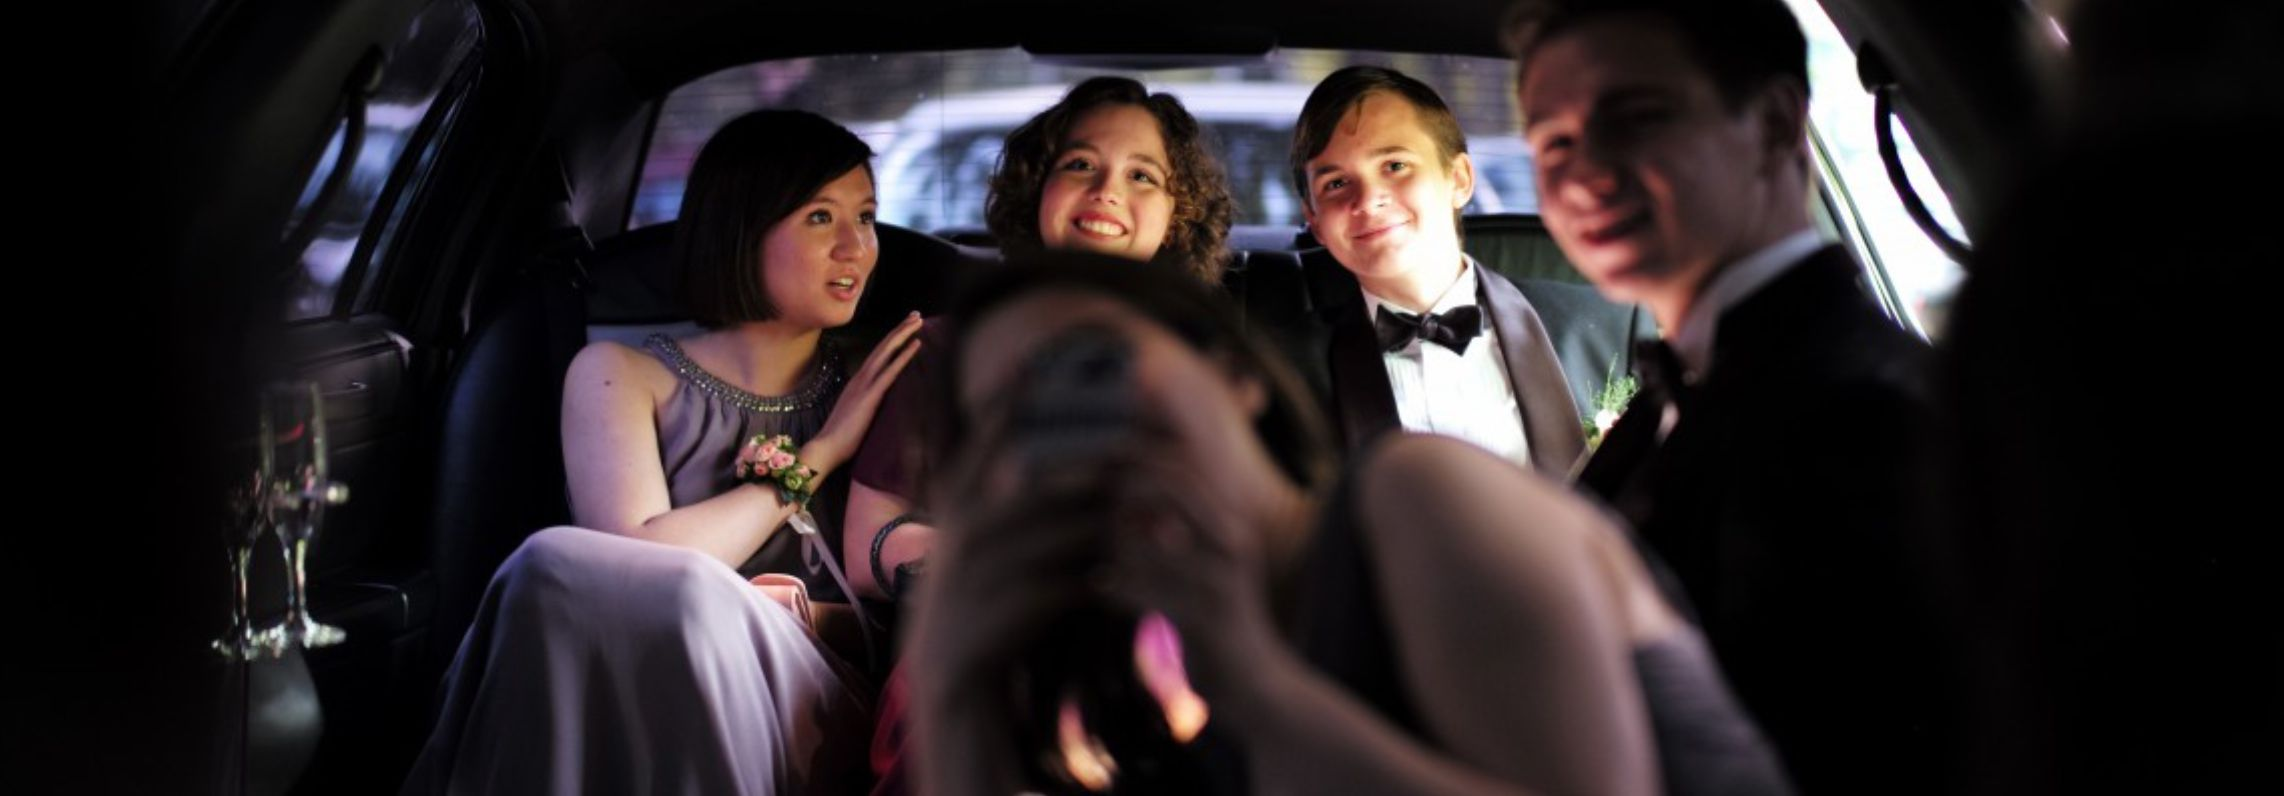 Limo Prom 5 Reasons To Book A Prom Limo Primo Limo Raleigh Nc